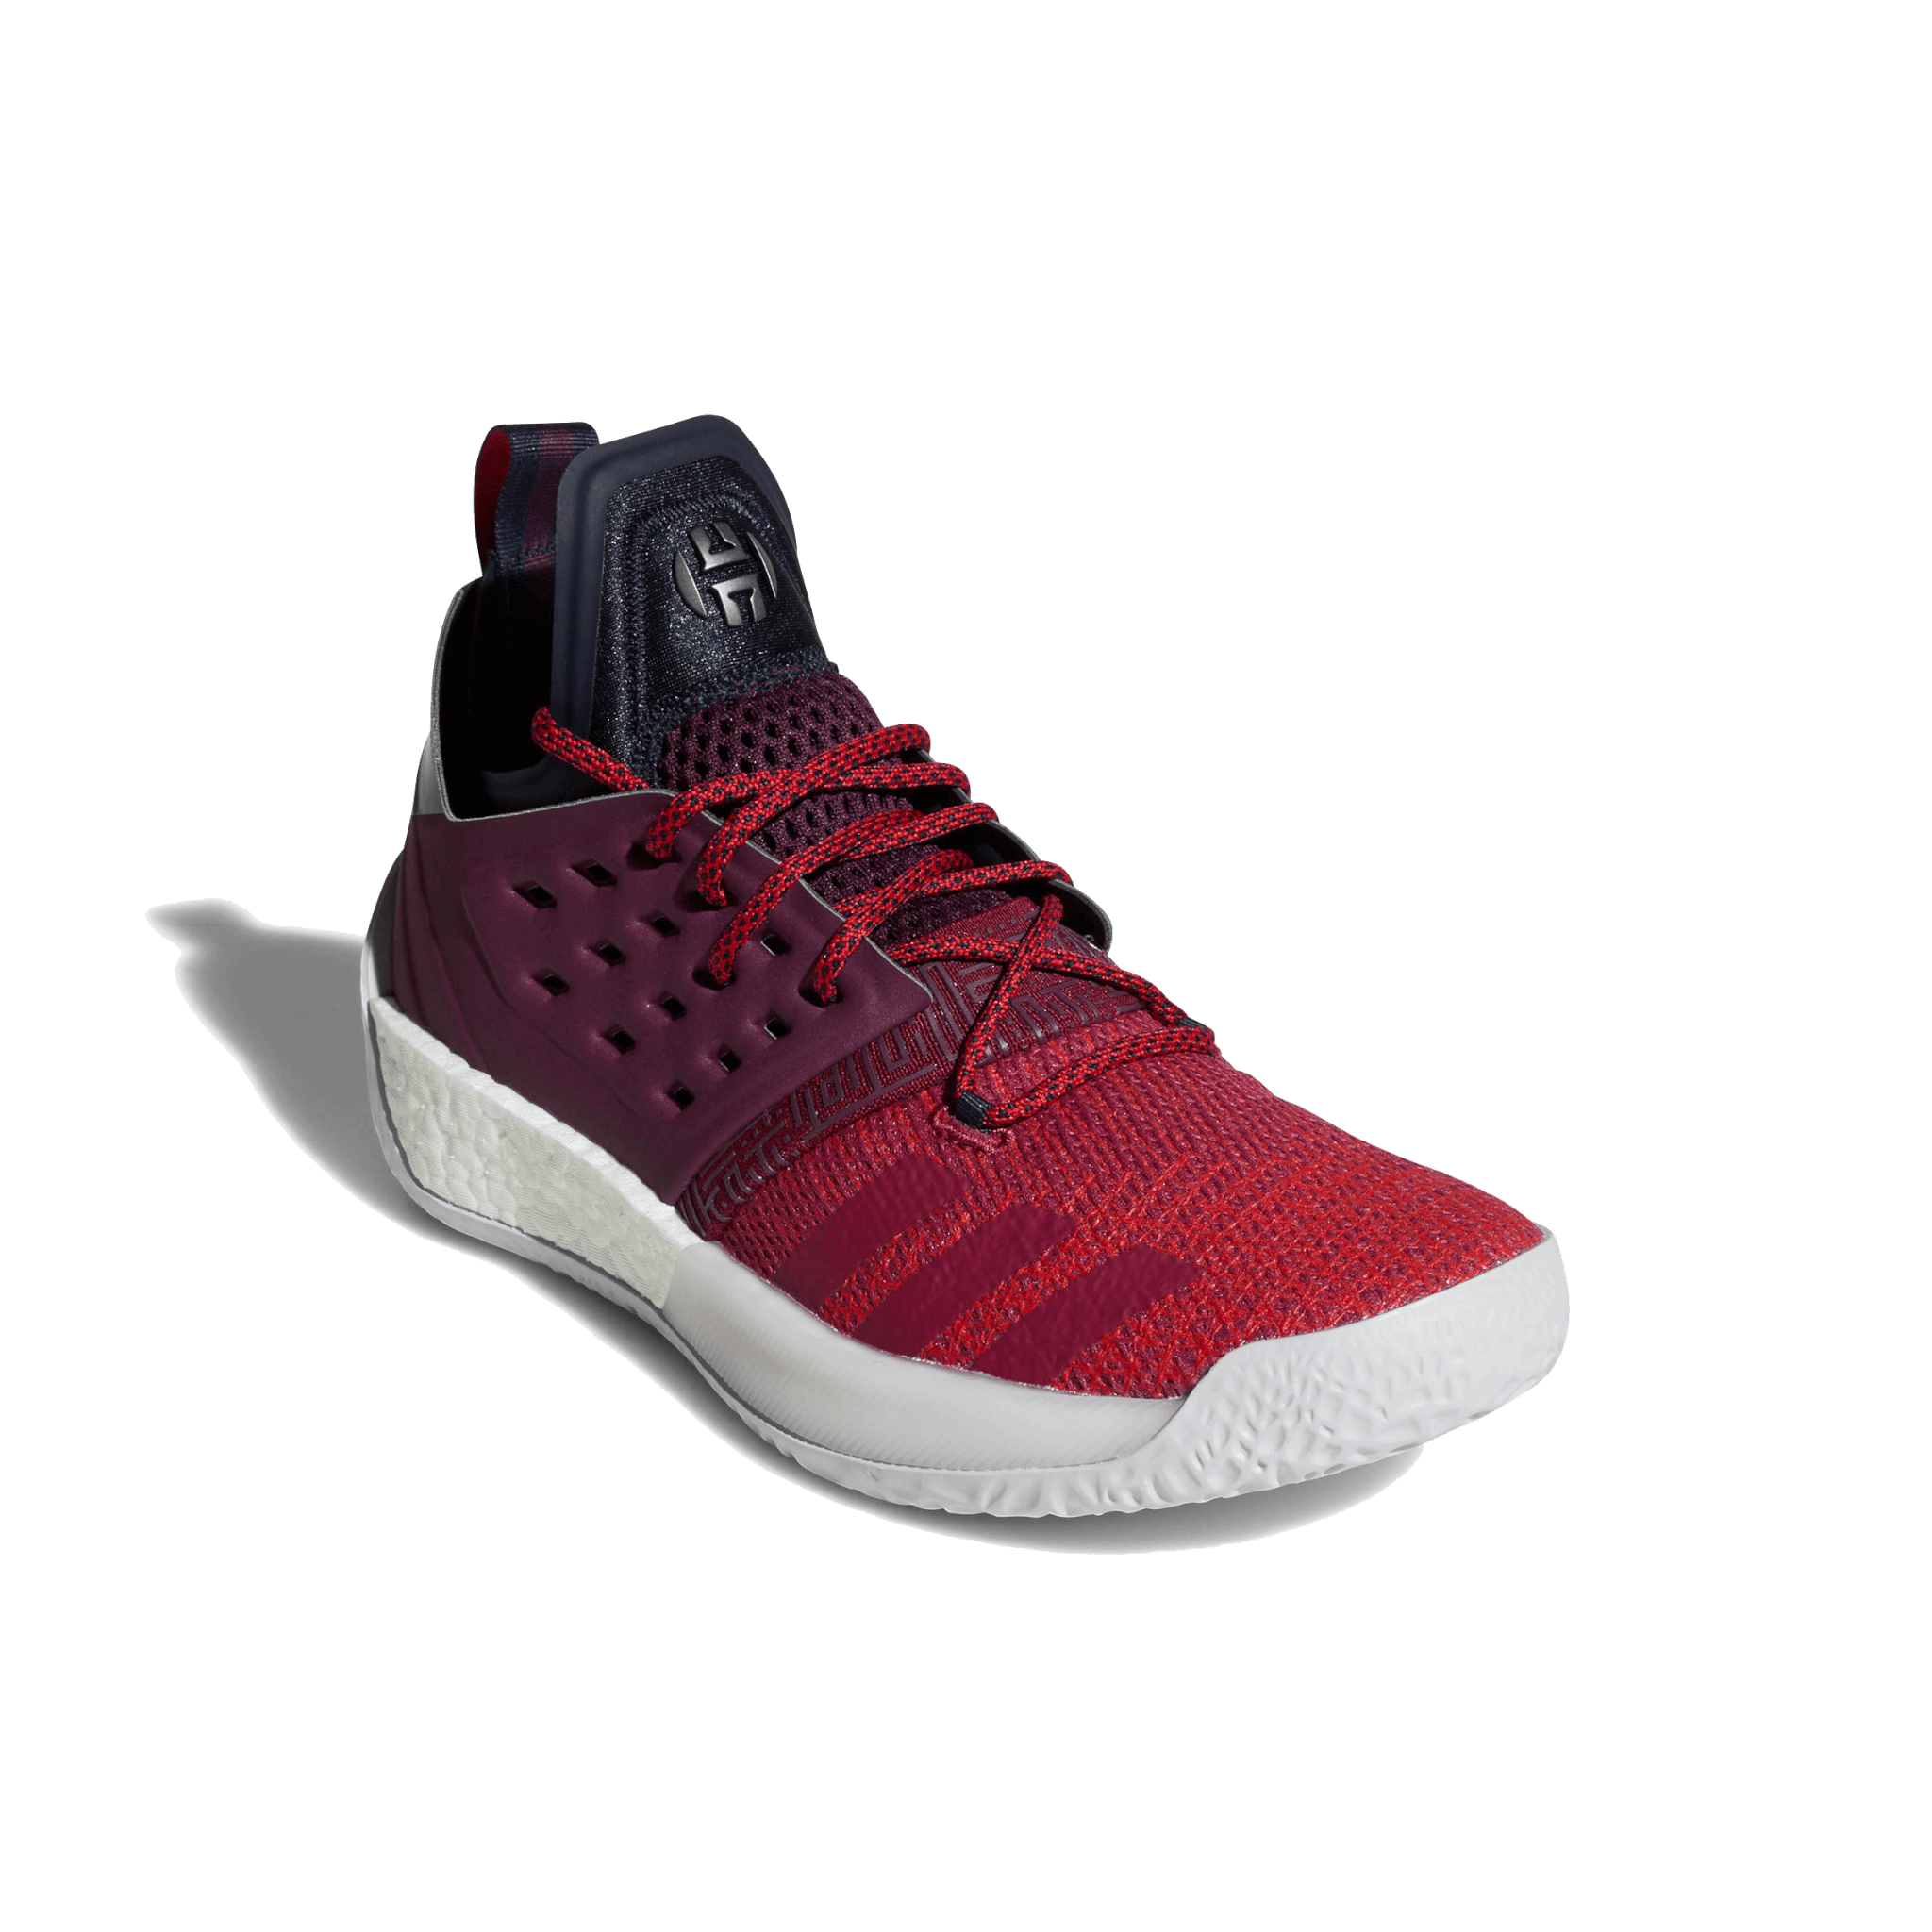 a8b9381a5b69 Adidas Harden Vol. 2 Performance Review